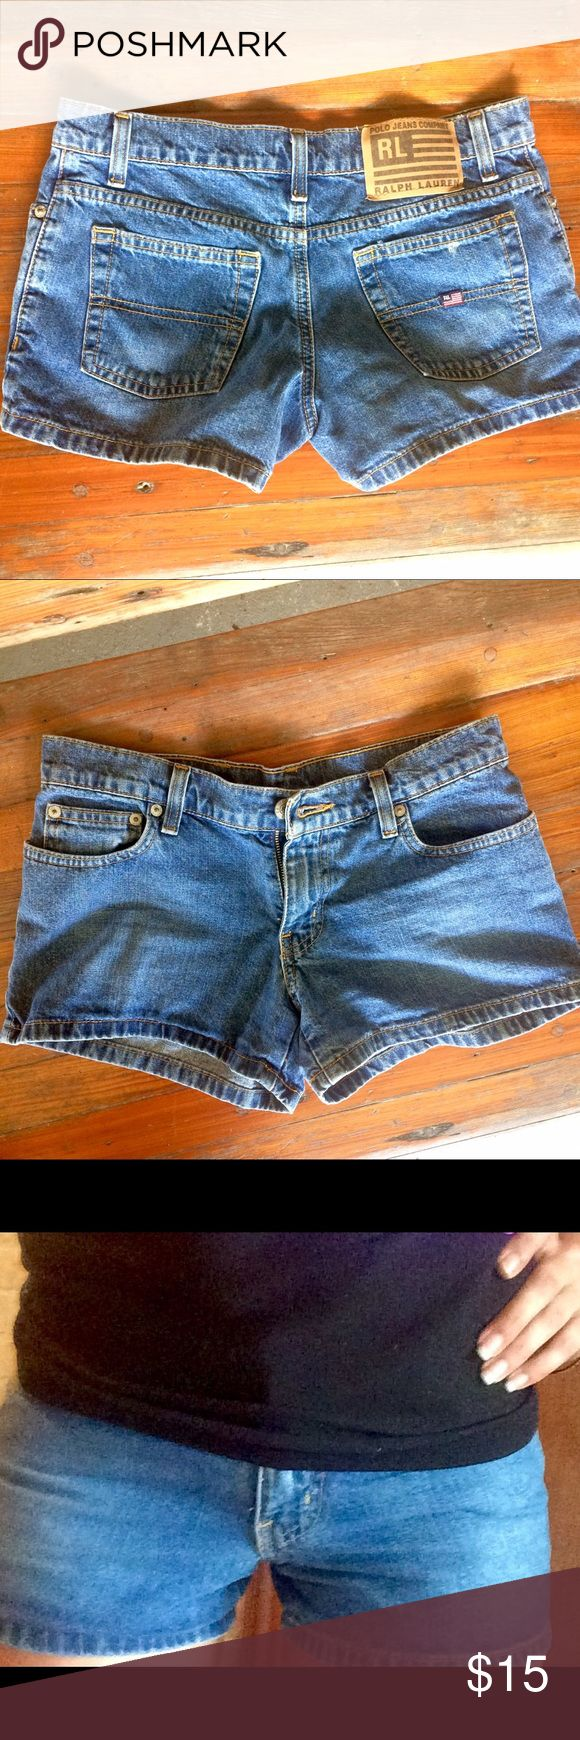 Ralf Lauren: Jean Shorts Ralf Lauren Polo Jean Shorts:                                  New Condition.   Size: 3/4.                                       Mid Waist rise                                                    Find me on Merc for even better deals!! Polo by Ralph Lauren Shorts Jean Shorts